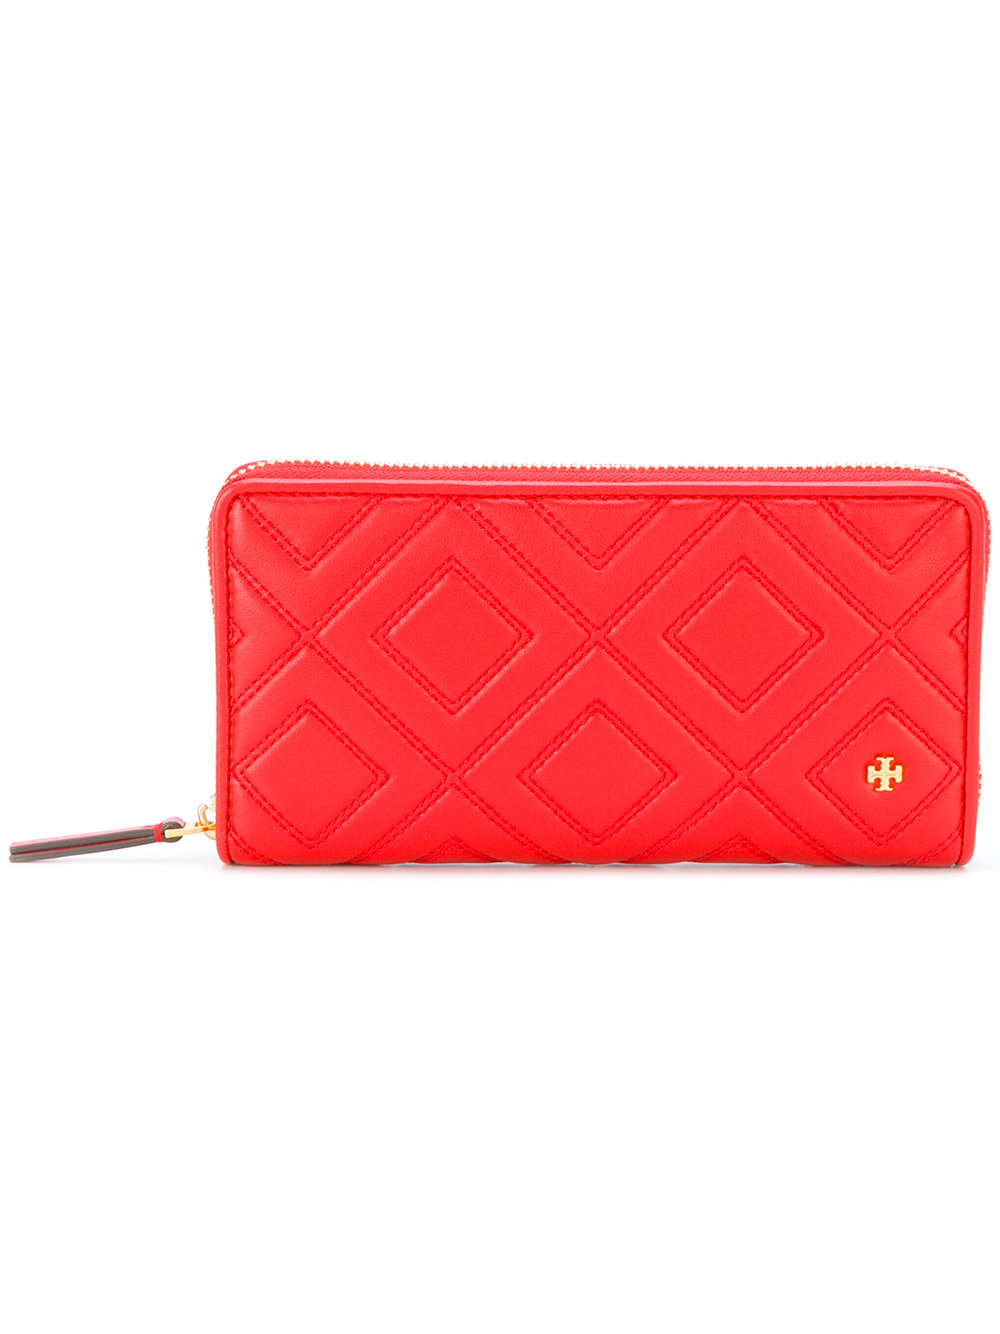 Tory Burch PORTAF FLEMING